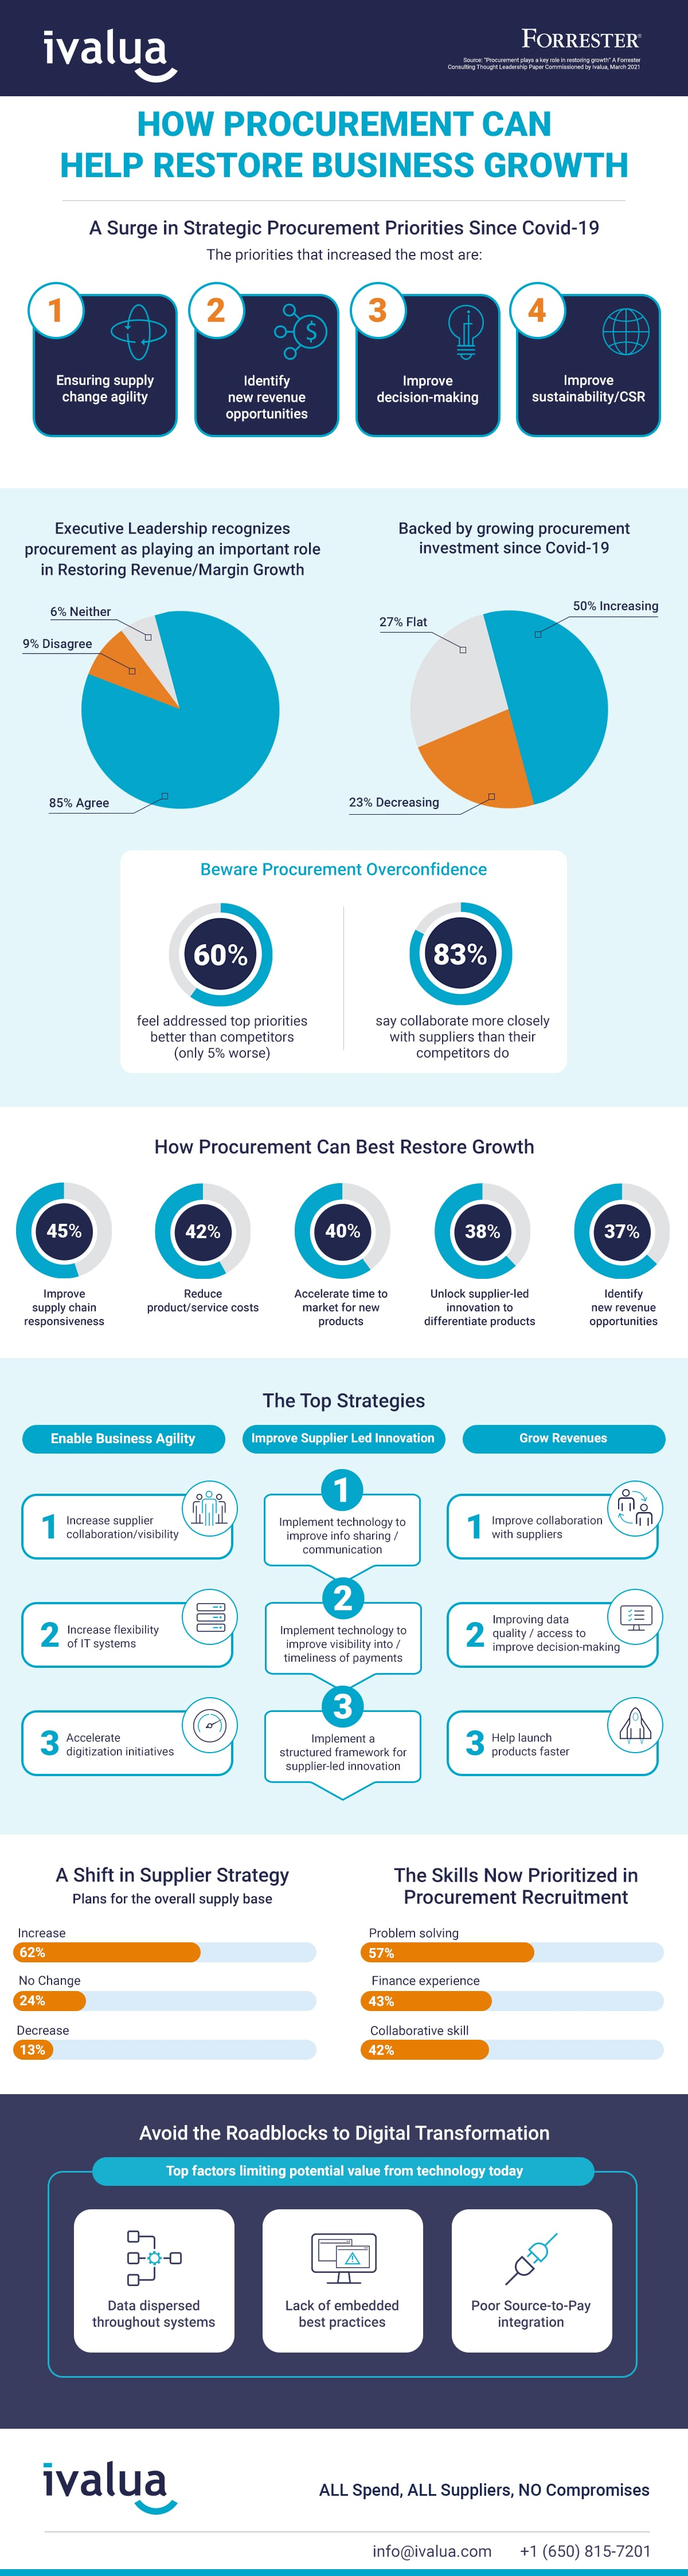 infographic-Forrester-2021-Restoring-Growth-min